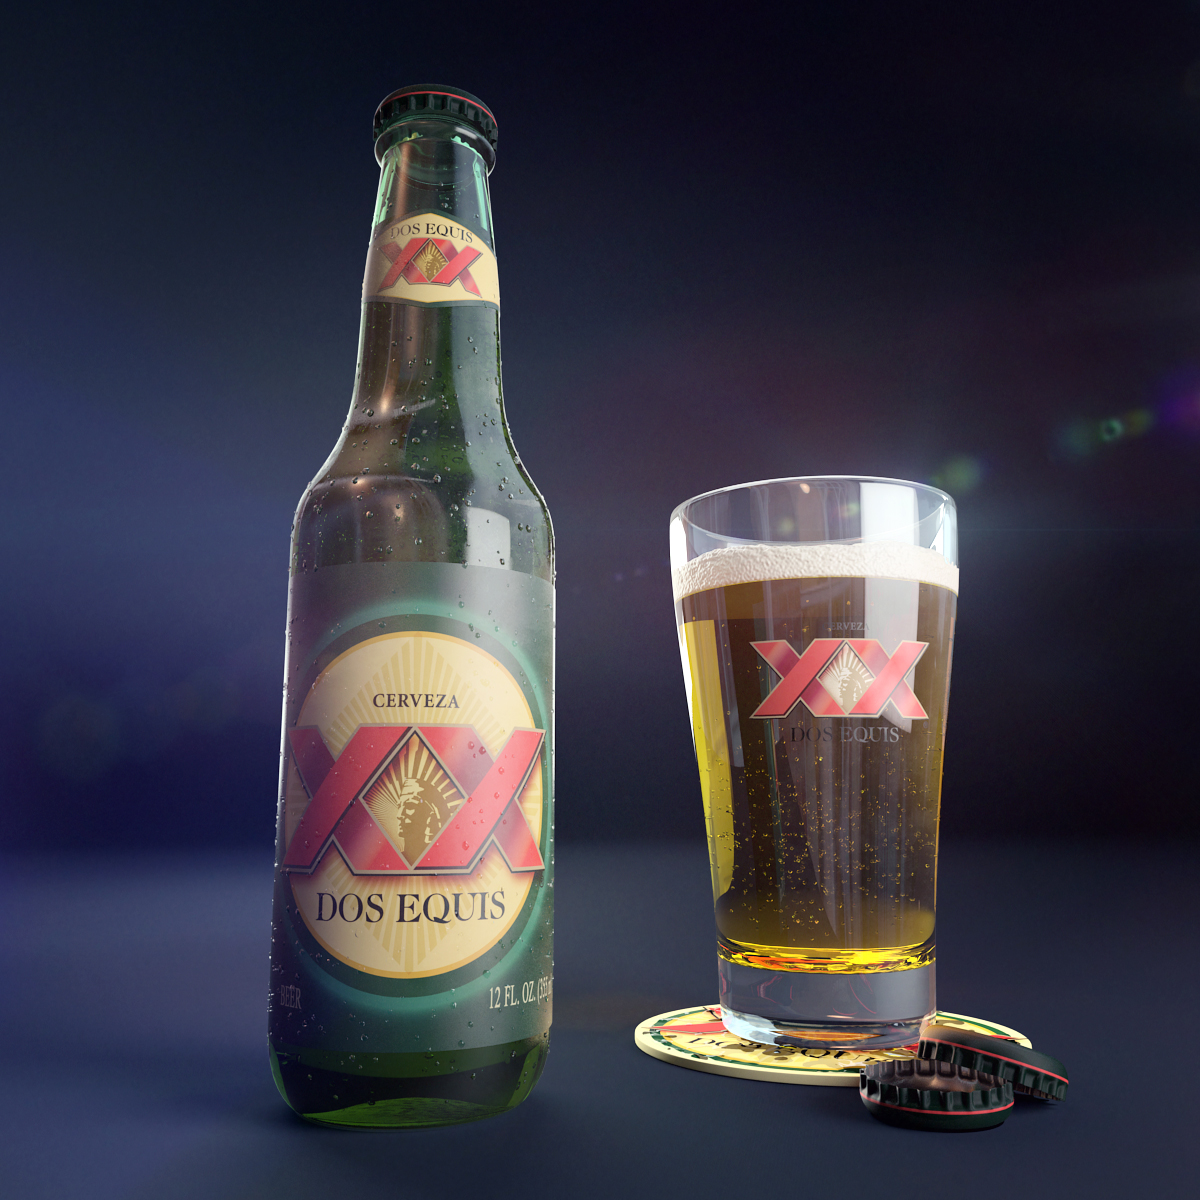 XX Lager